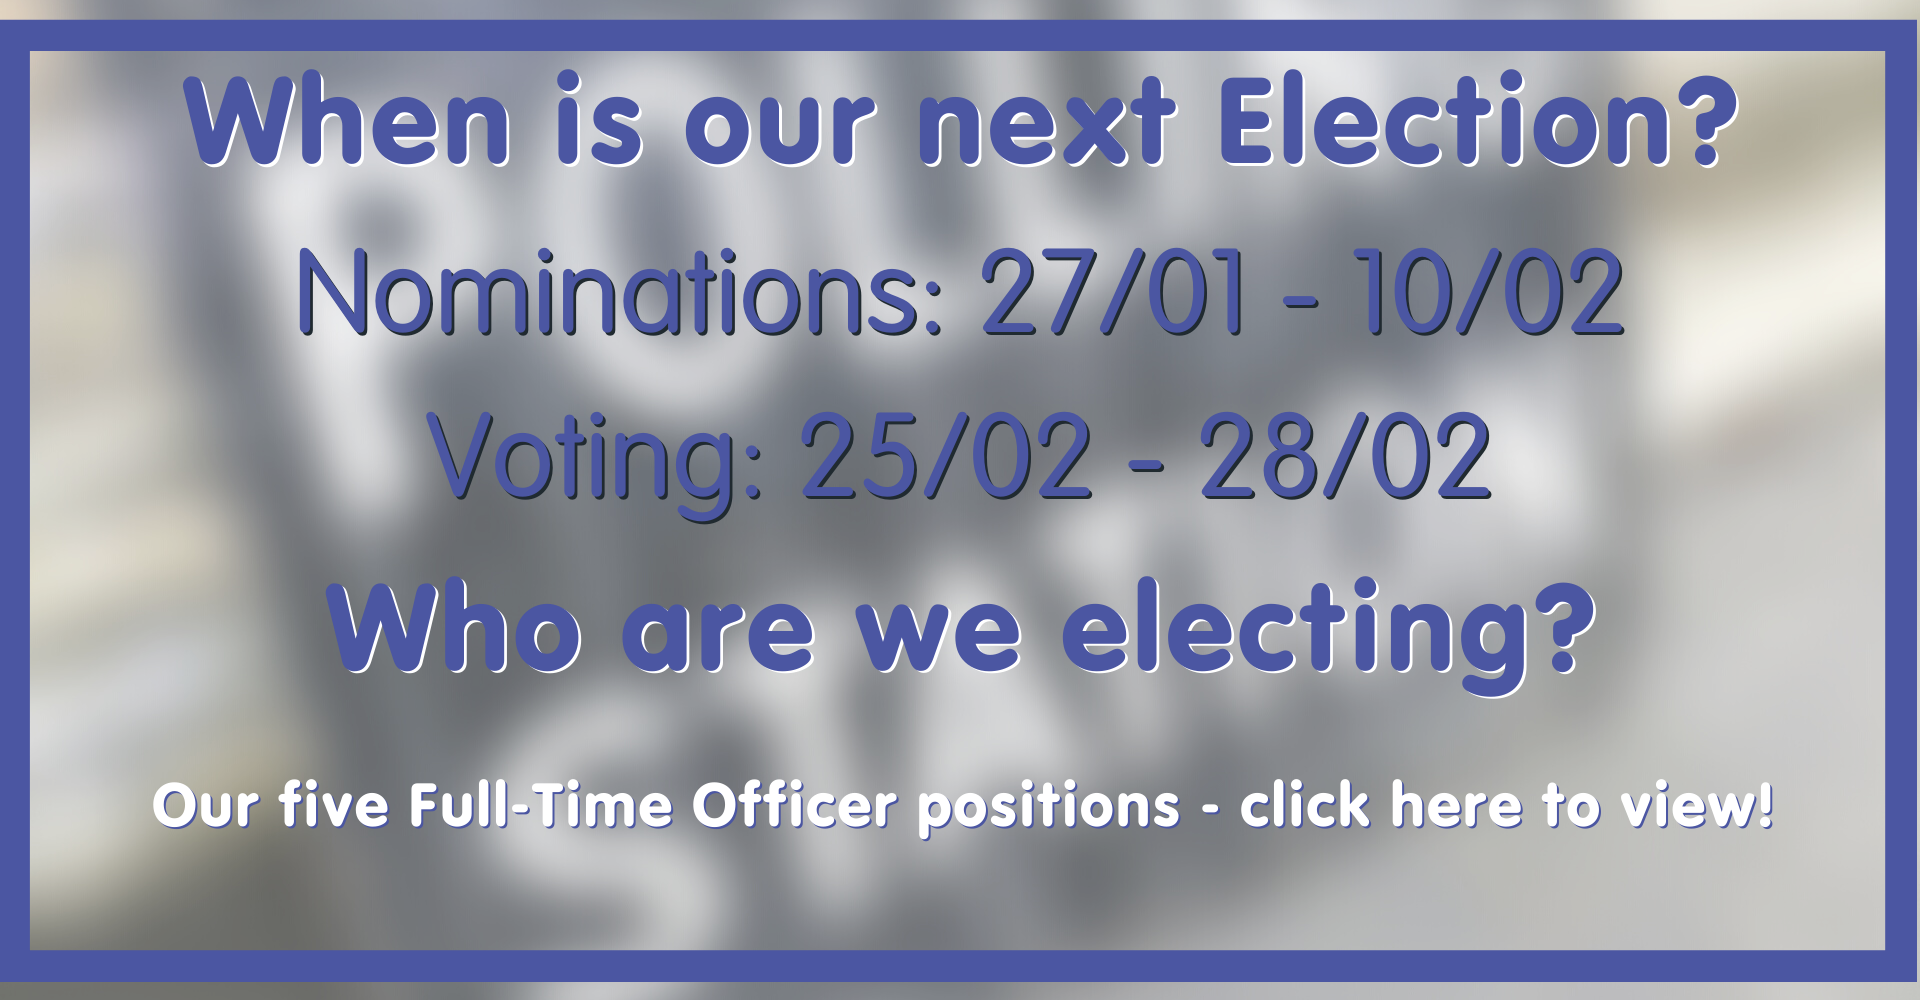 Nominations for our next Election open on the 27th Jan and close 10th Feb. Voting is open on the 25th Feb until the 28th. We are electing our five Full-Time Officer positions - click here for more